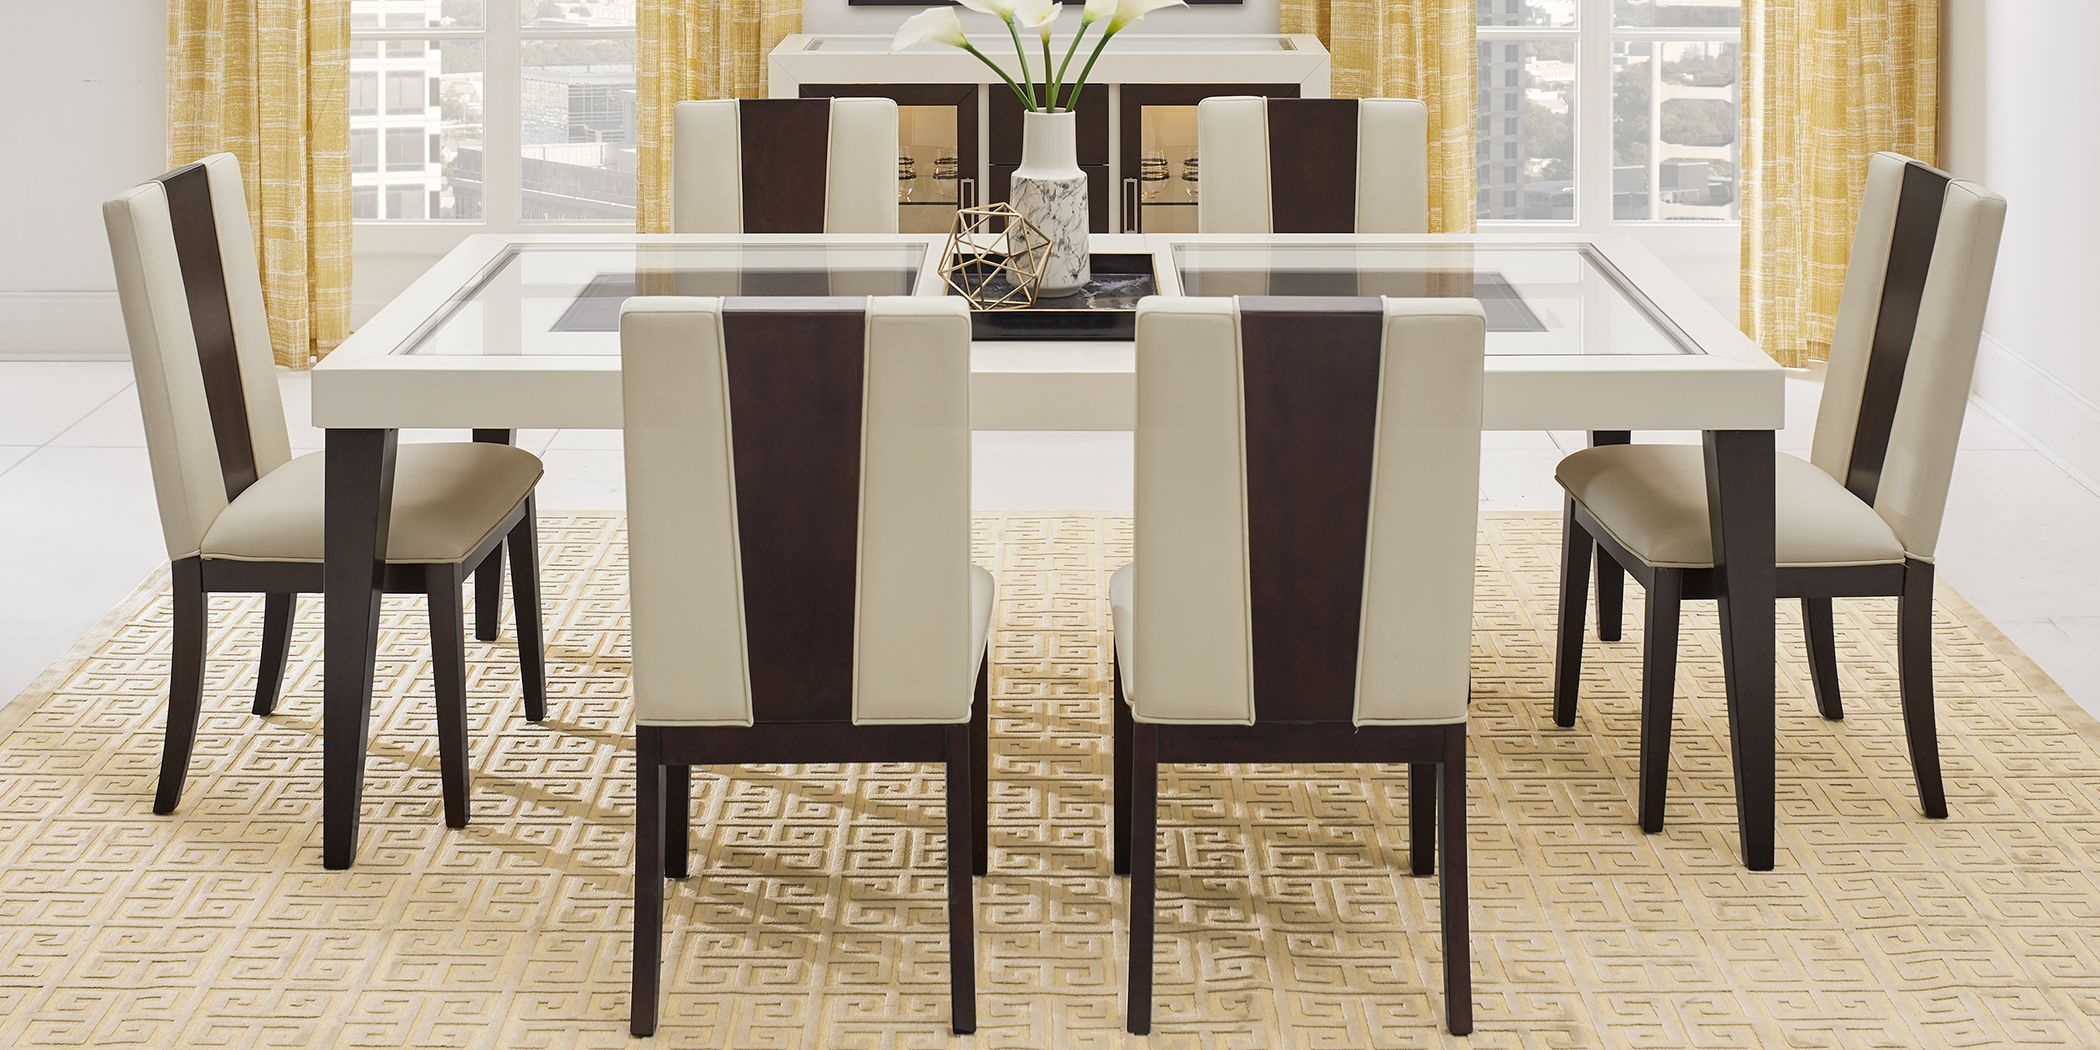 Sofia Vergara Savona Ivory 5 Pc Rectangle Dining Room with ...